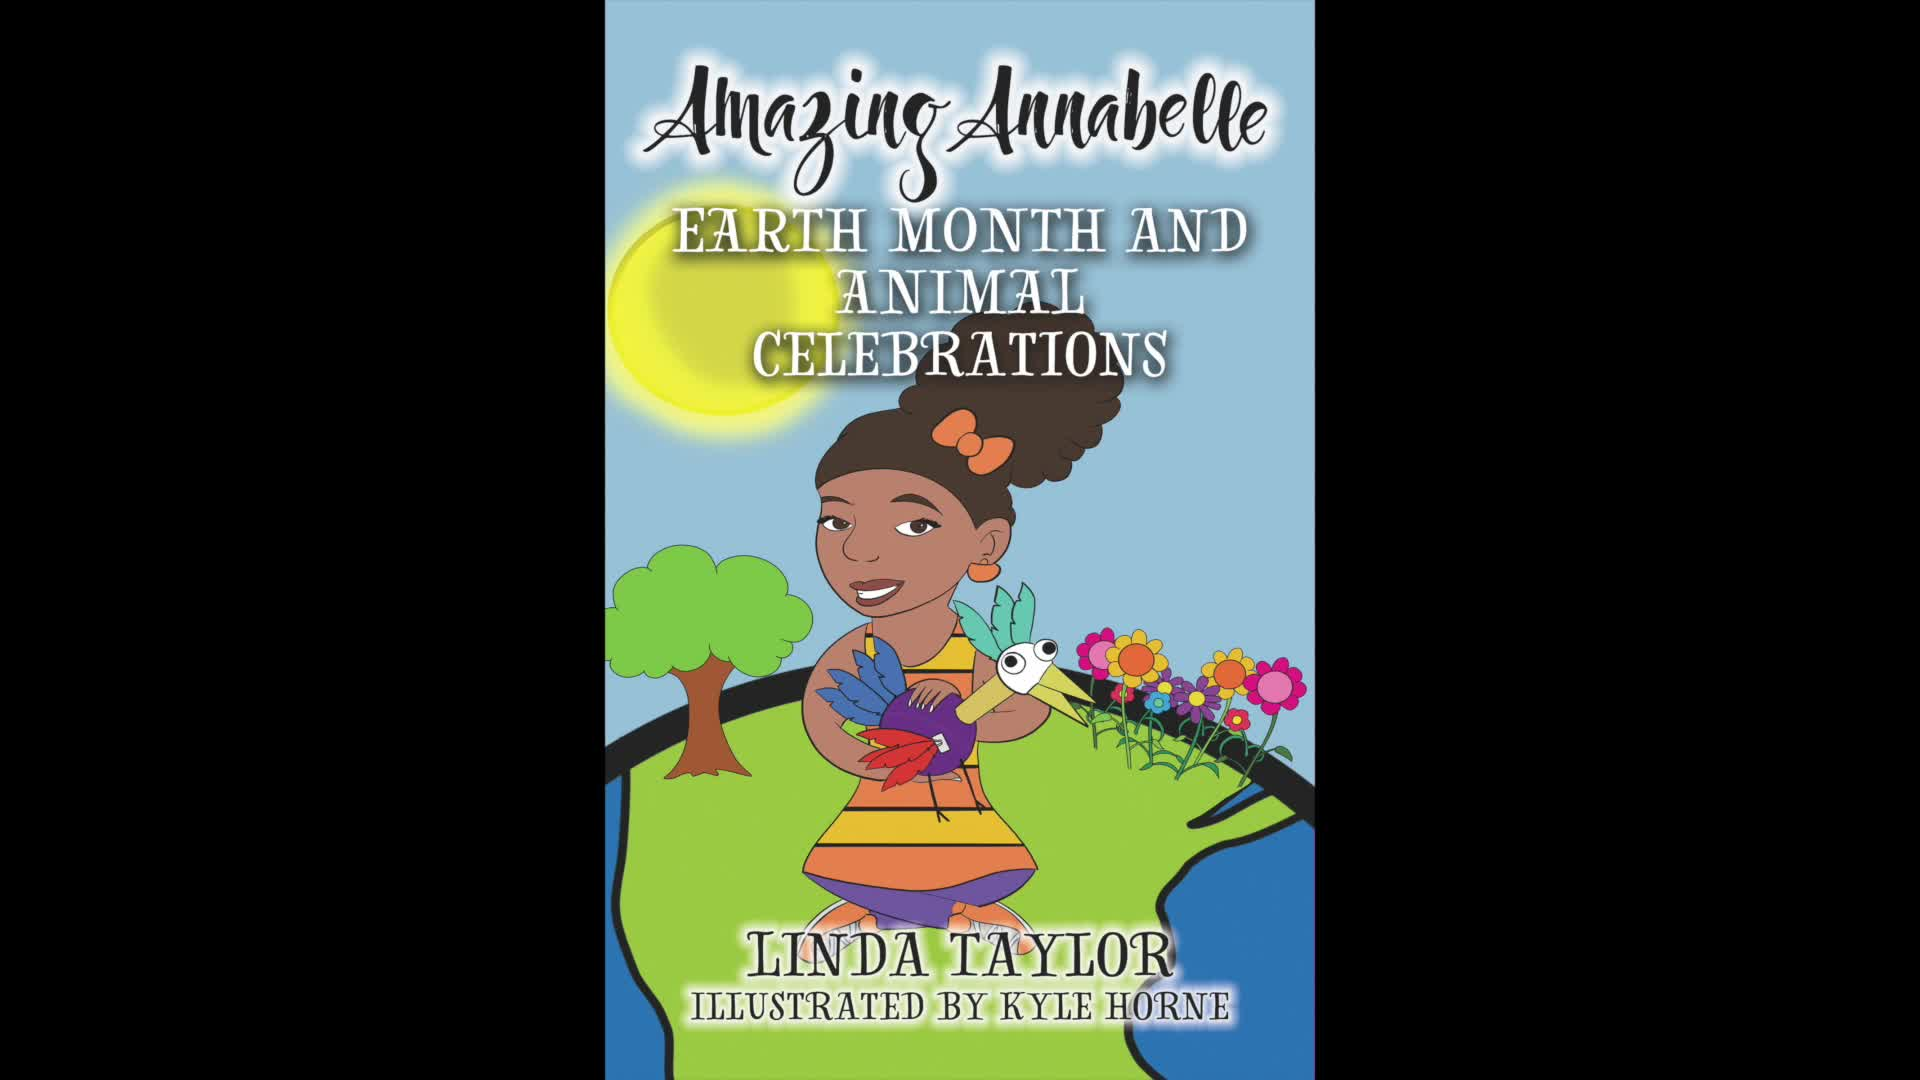 Amazing Annabelle Earth Month And Animal Celebrations Chapter 4